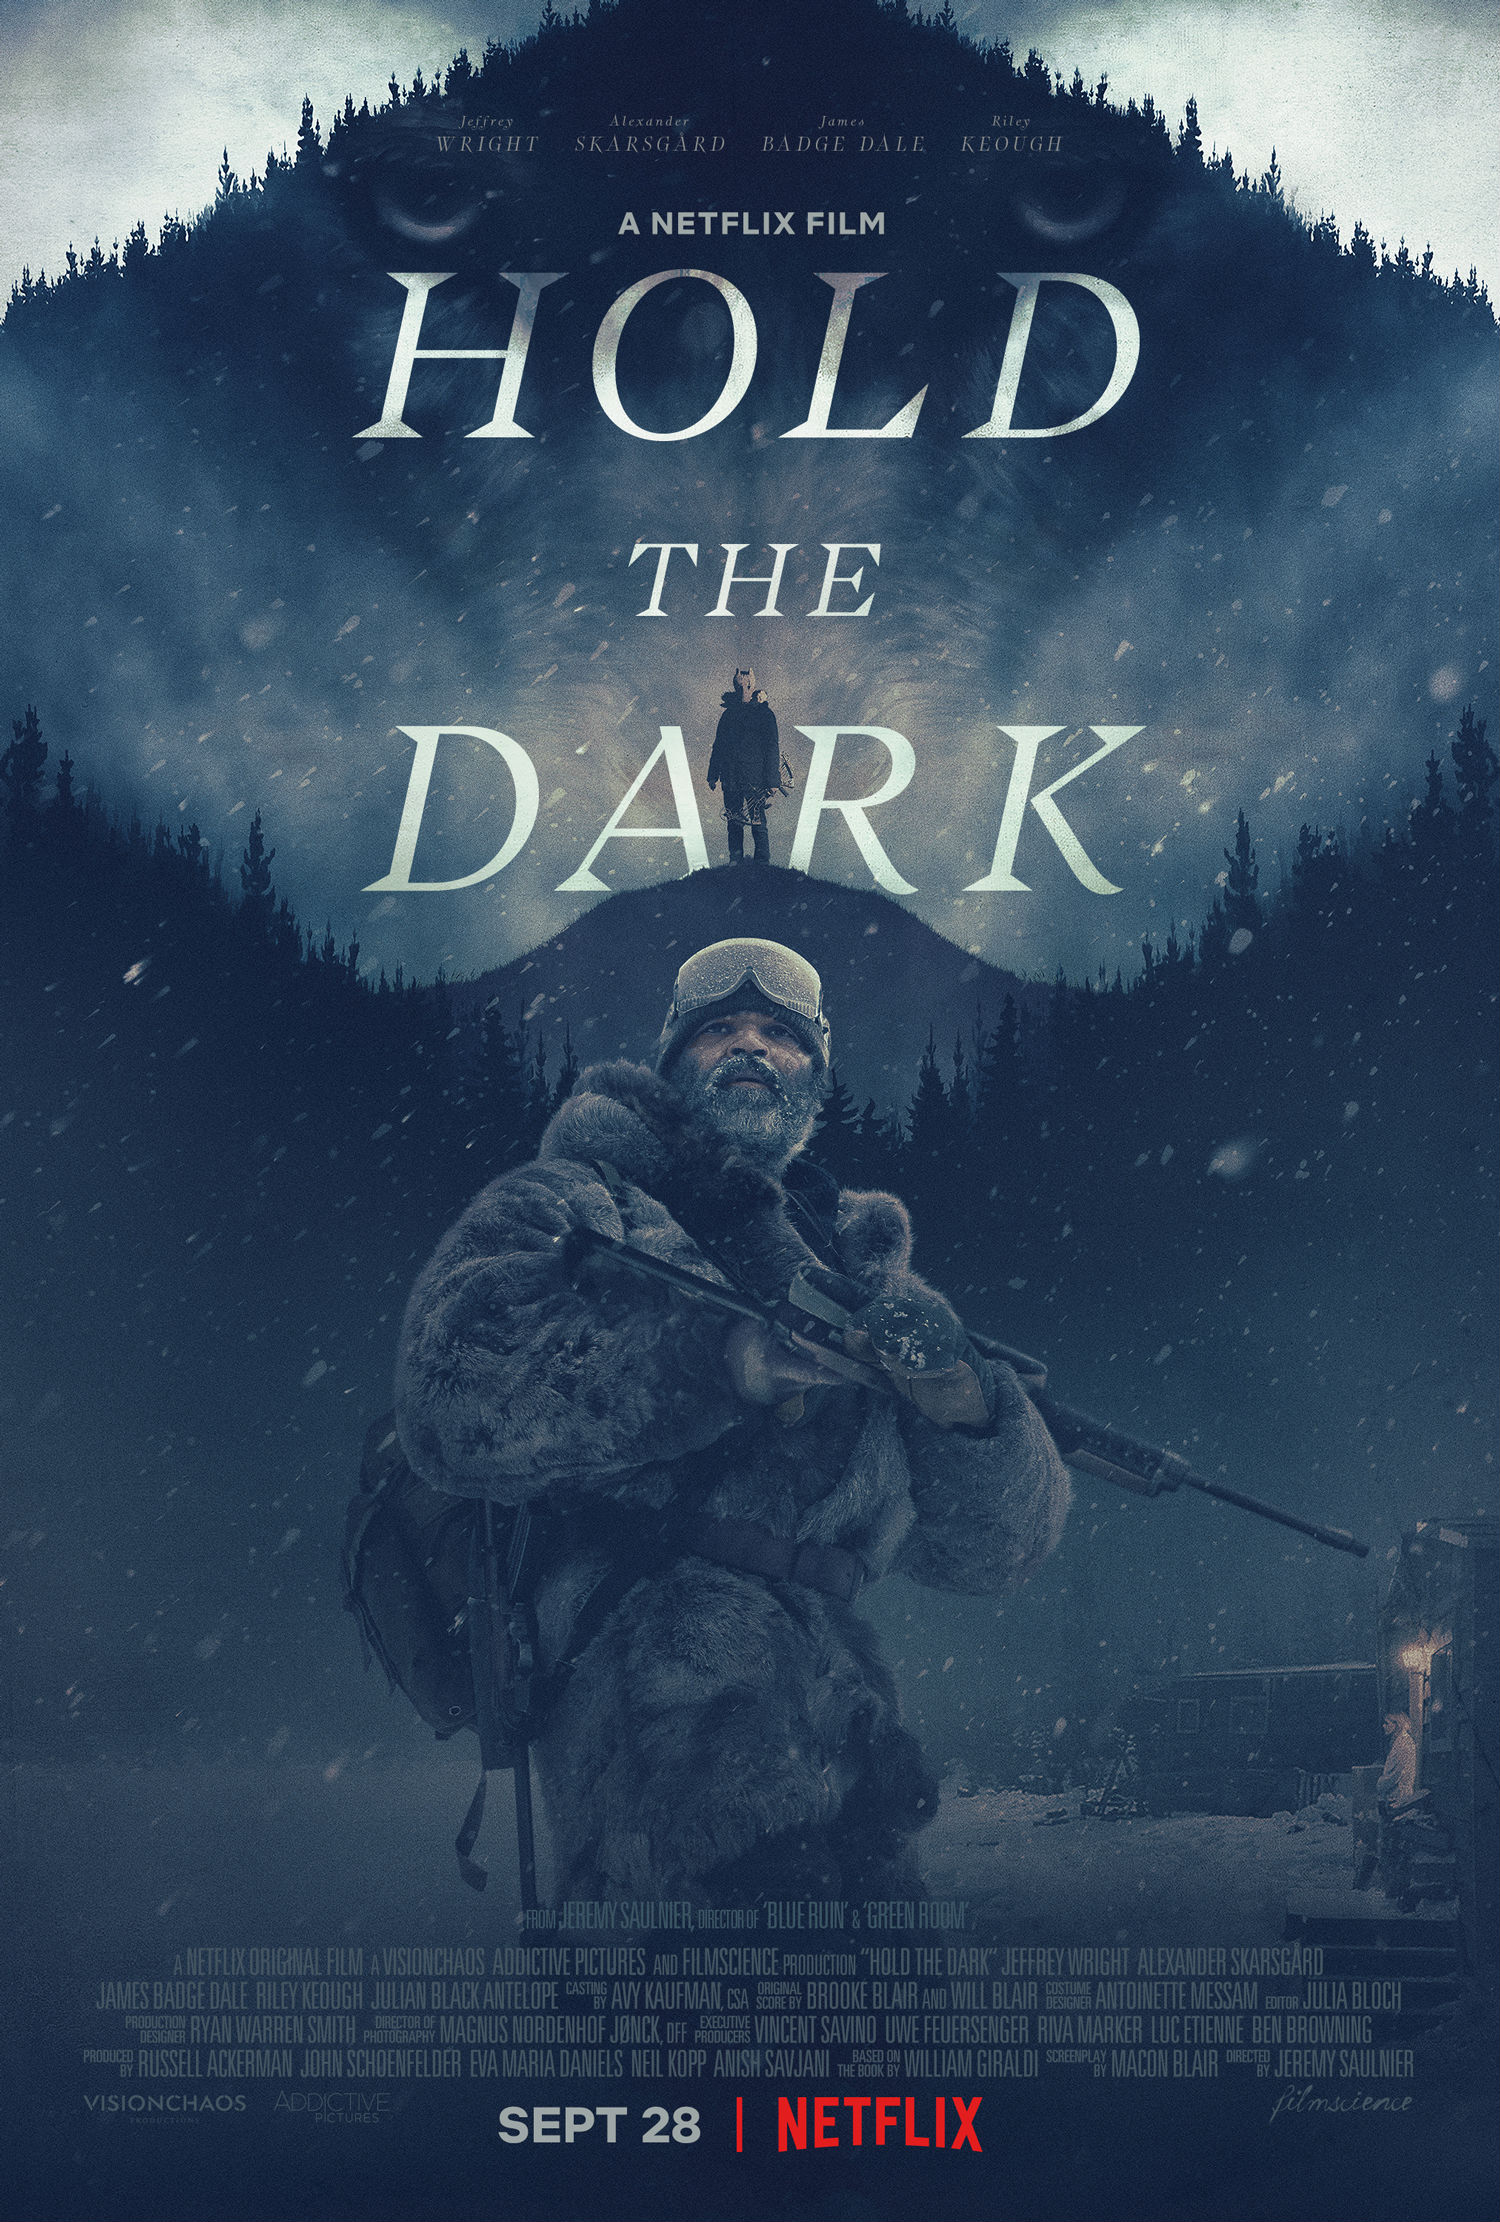 Poster To Netflix's Psychological Thriller Hold The Dark, Starring